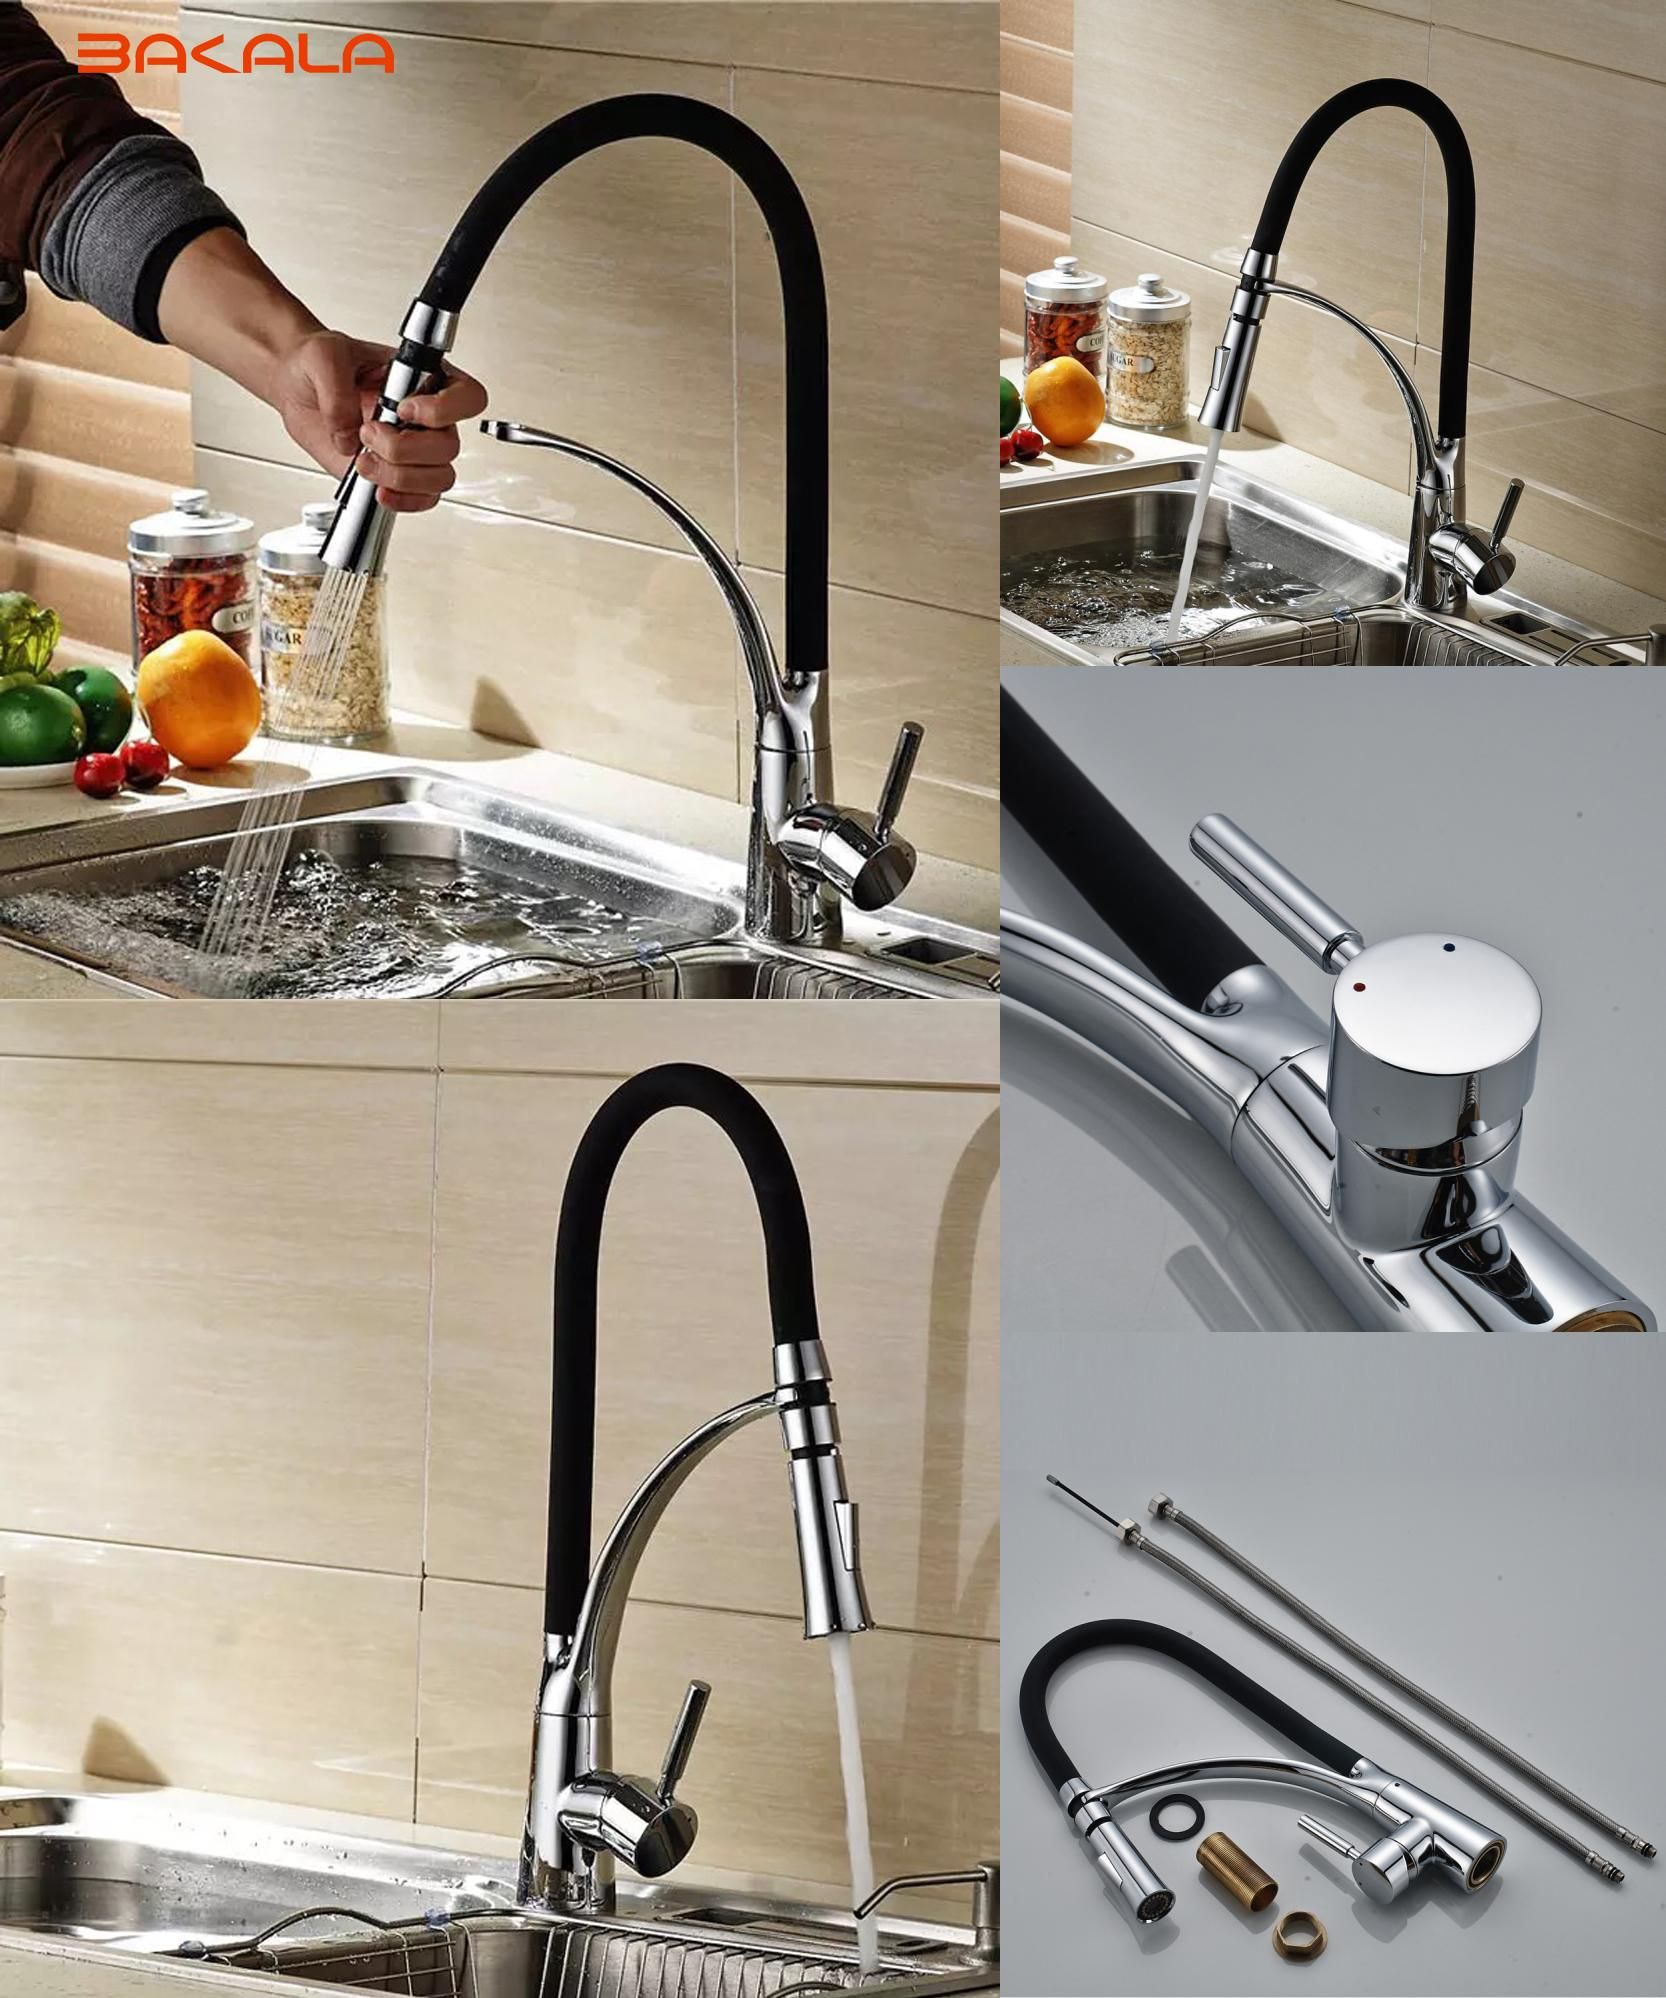 Visit To Bakala Black And Chrome Finish Kitchen Sink Faucet Deck Mount Pull